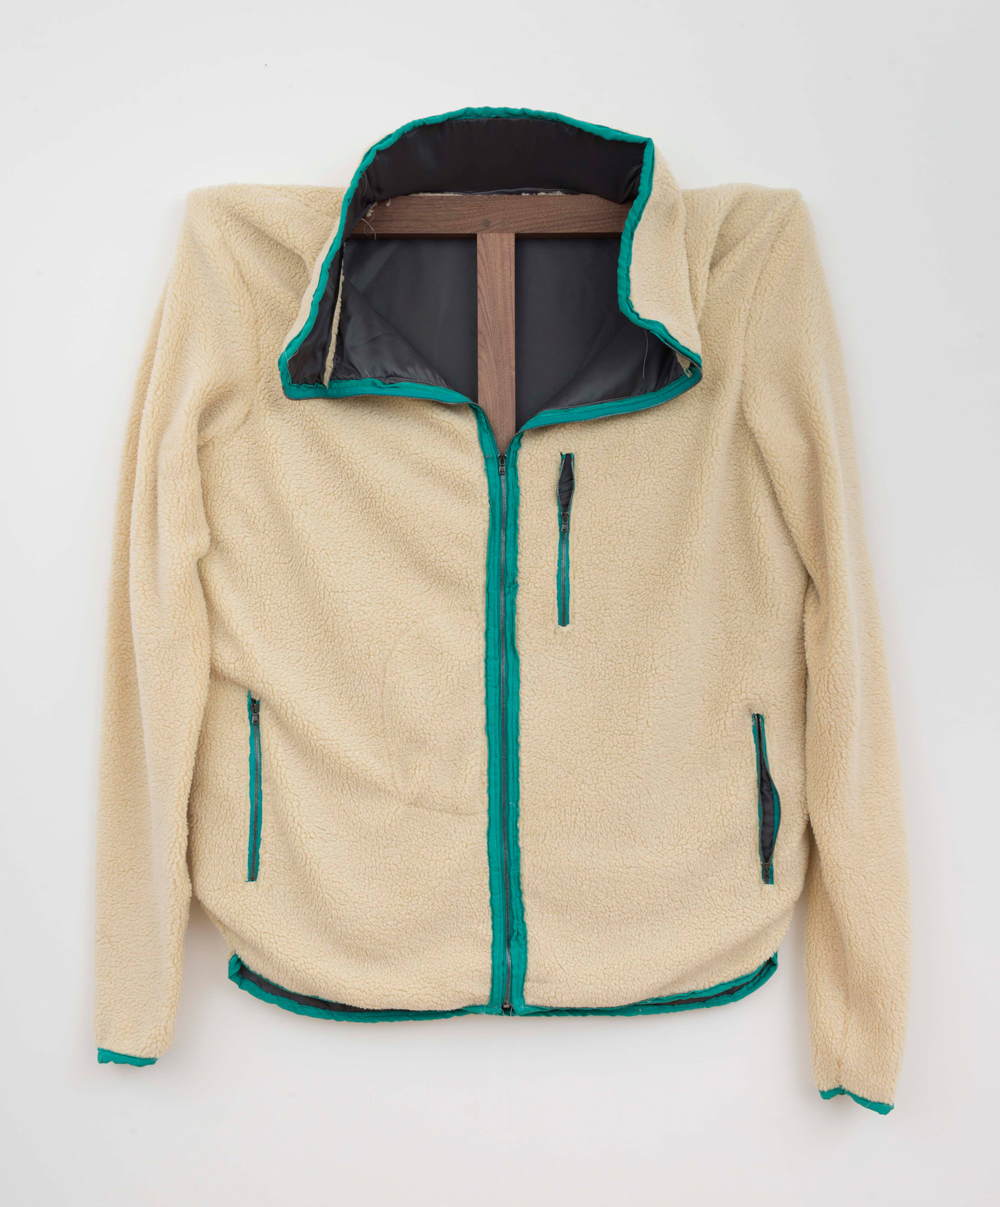 Patagonia Fleece (Green piping), 2015, 117 x 101,5 Mixed textiles on walnut stretcher